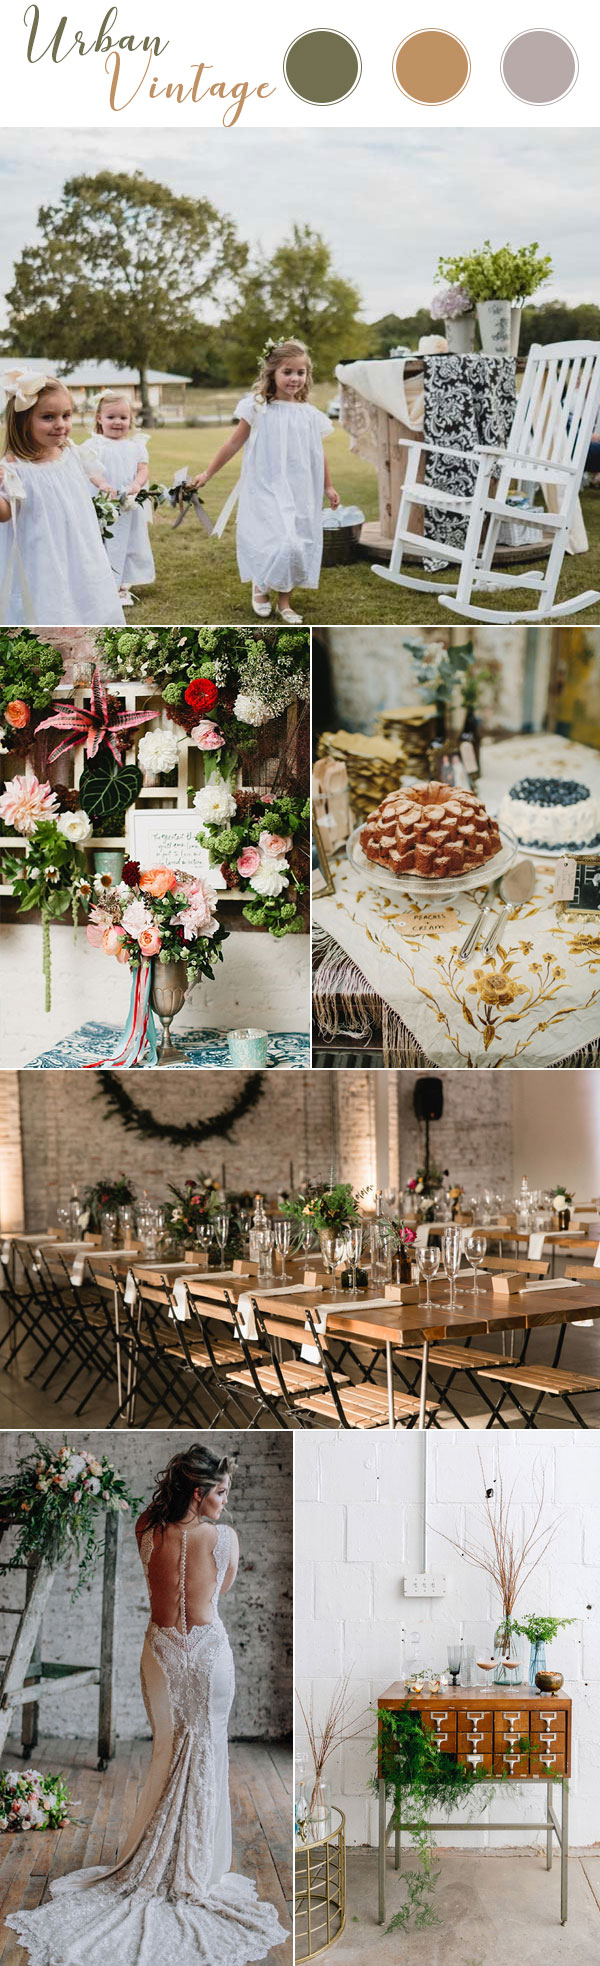 Trendy Urban Vintage Wedding Theme Inspiration 2018